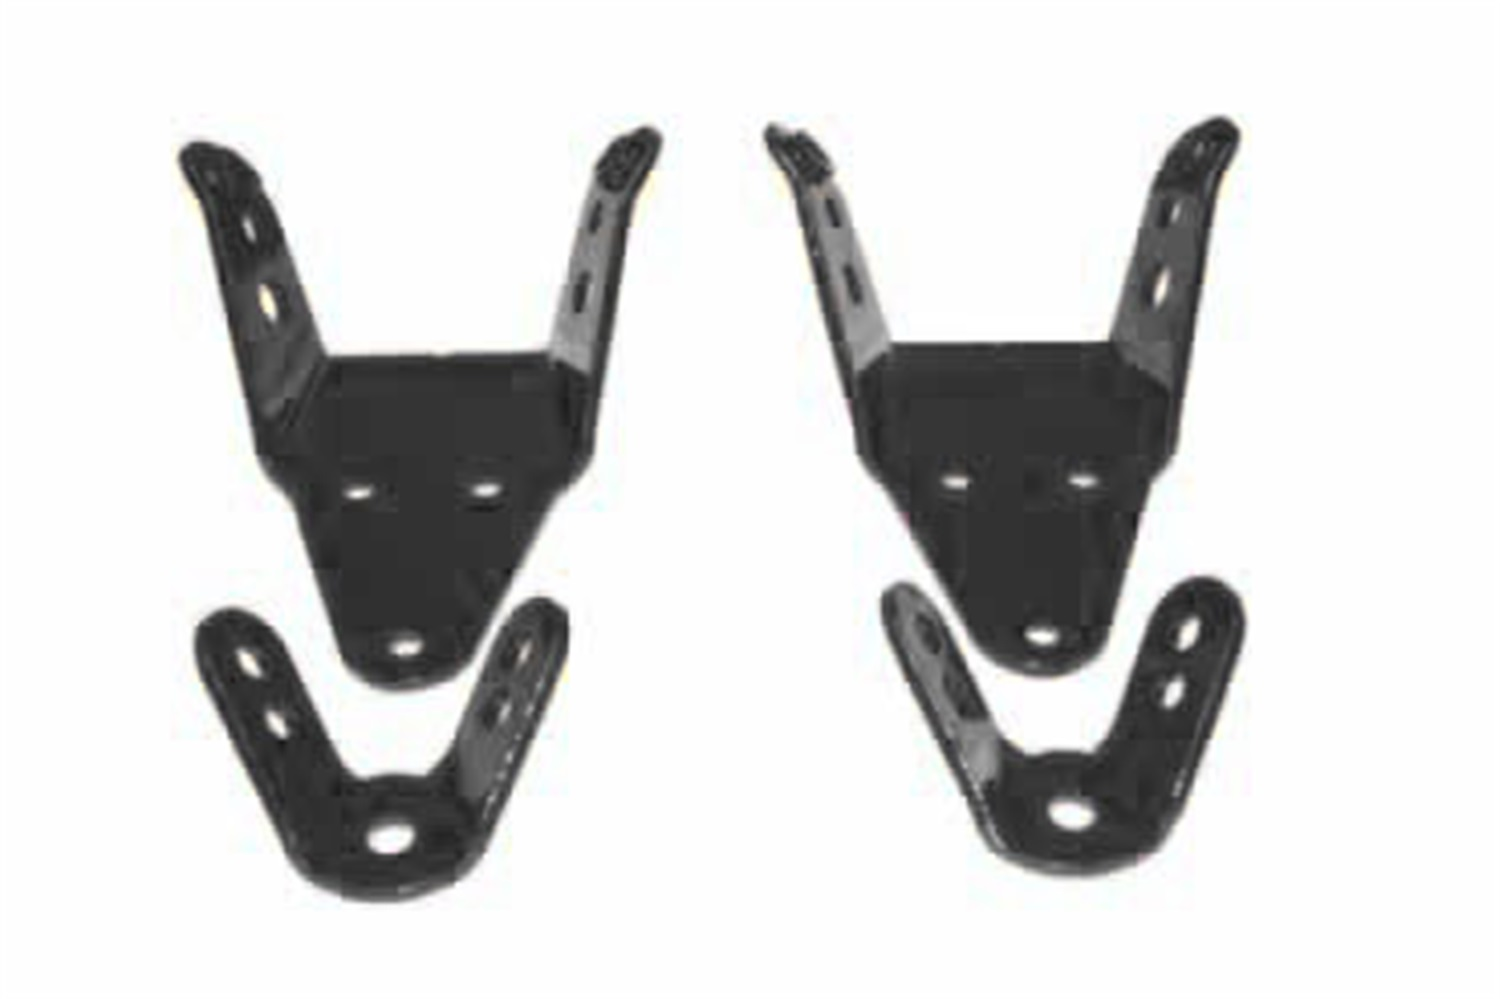 Skyjacker TS950 - Skyjacker Multiple Shock Bracket Kits